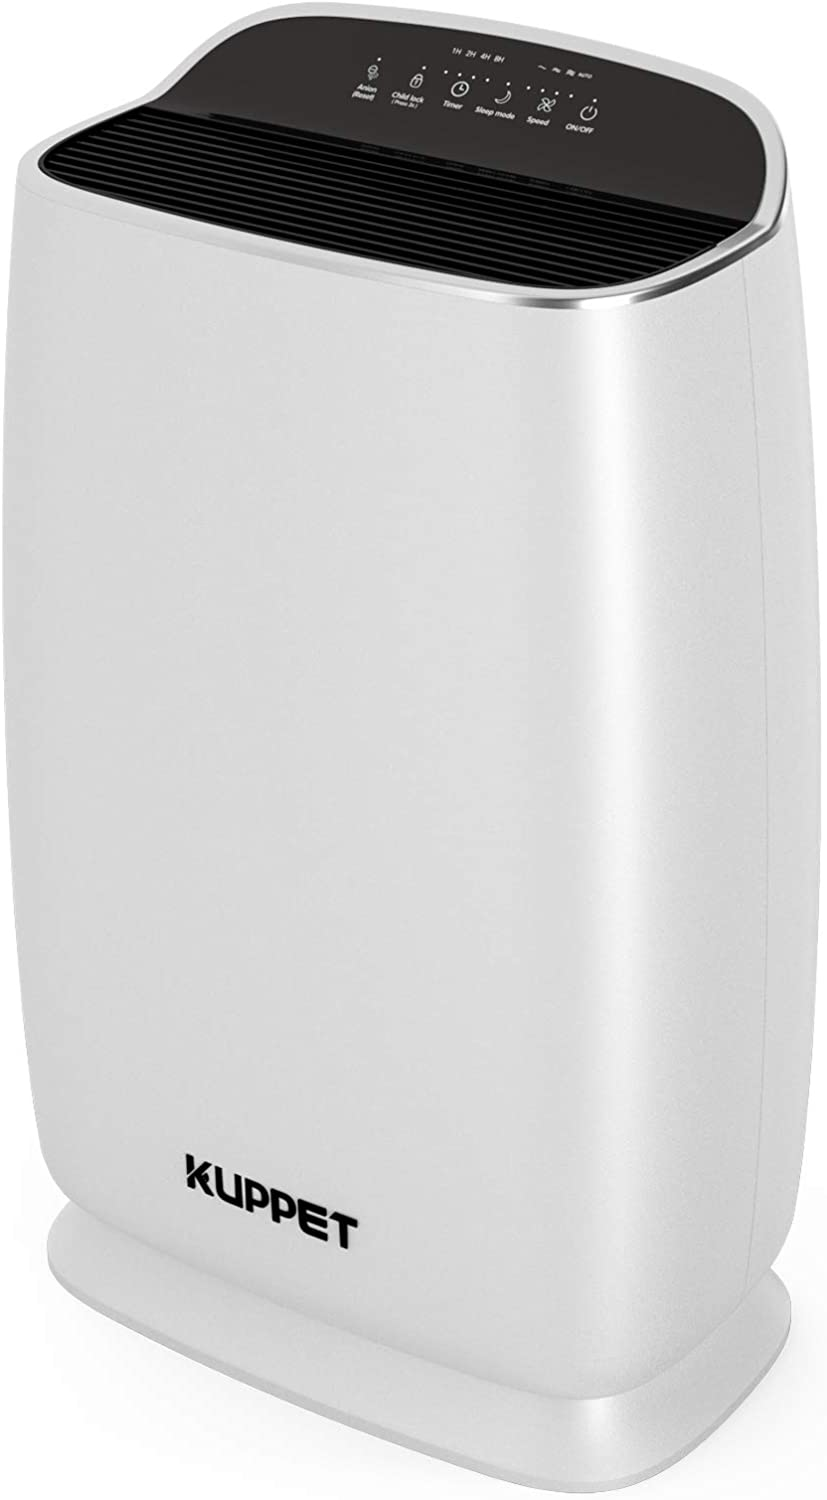 KUPPET Air Purifiers with True Negative Filter Anion 3-in- Special Campaign Long-awaited HEPA